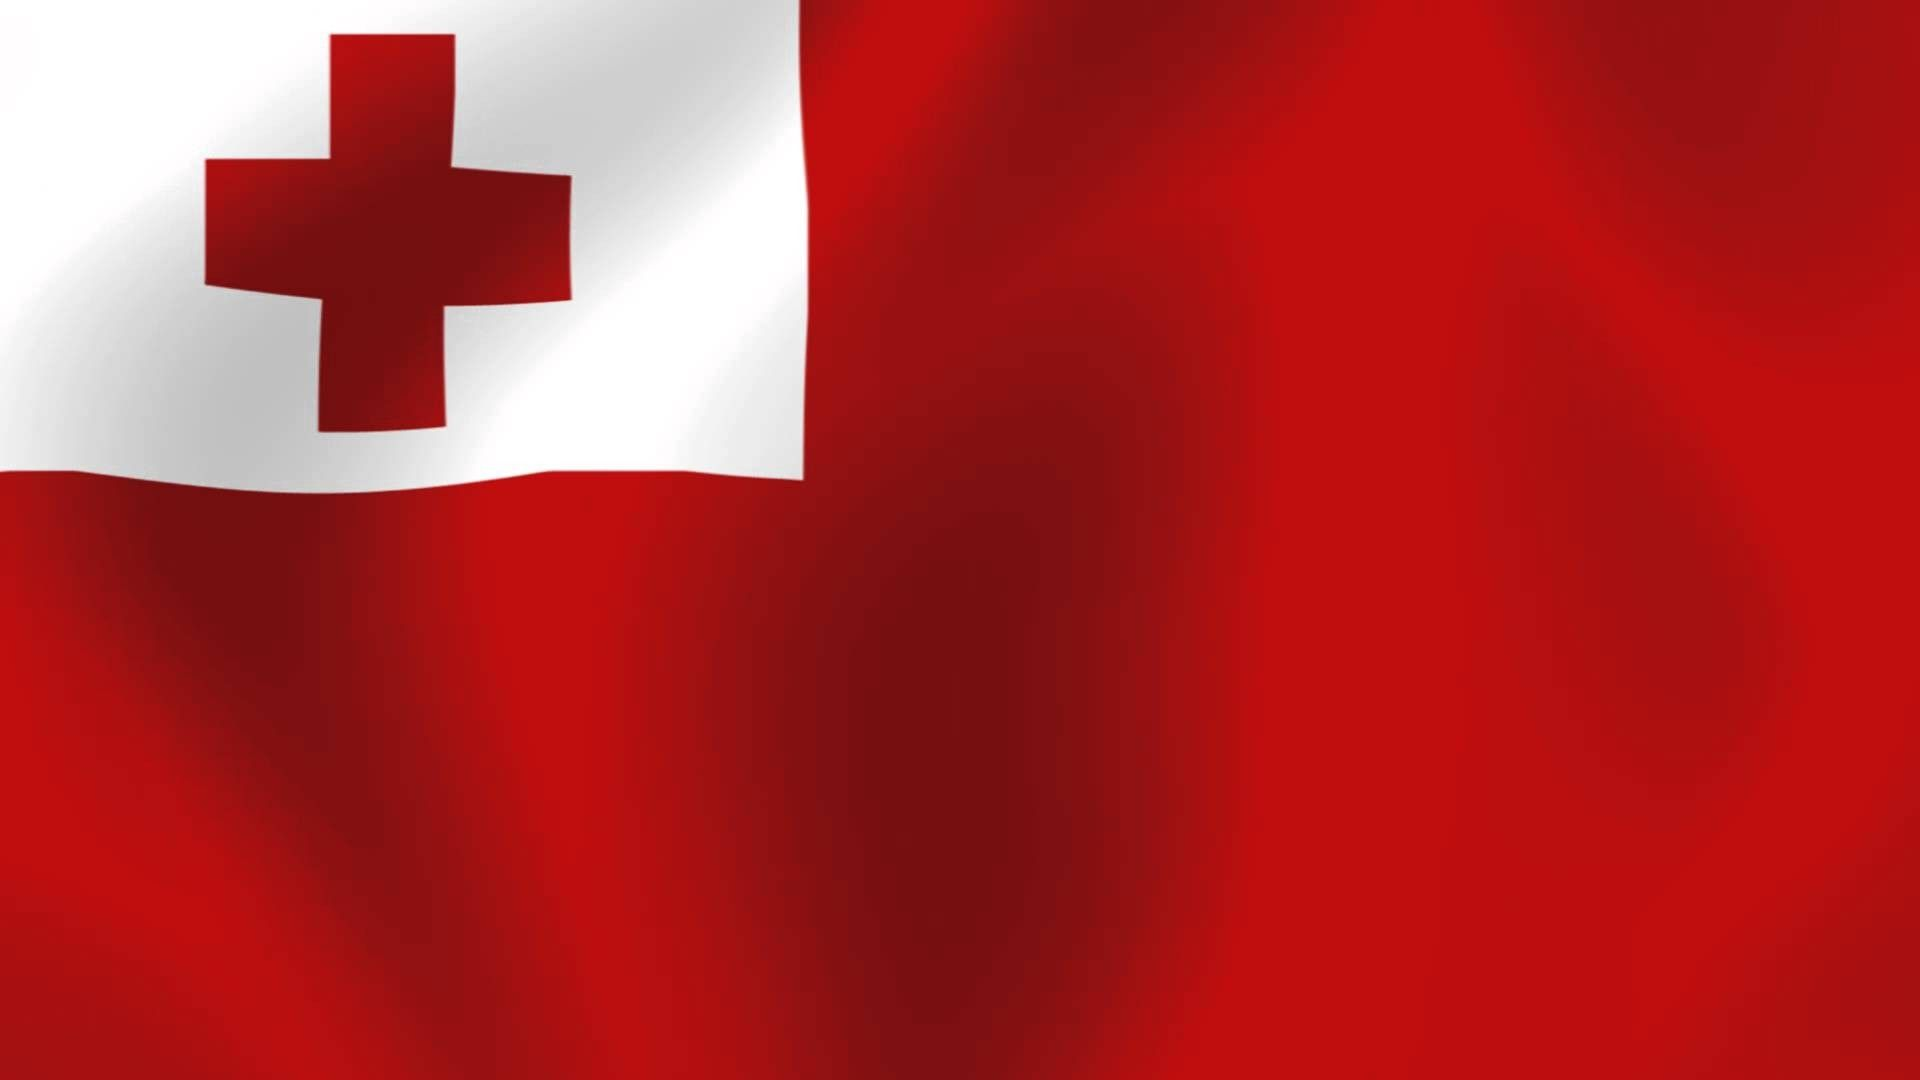 Flag of Tonga wallpaper Flags wallpaper Flag Wallpaper Tonga 1920x1080